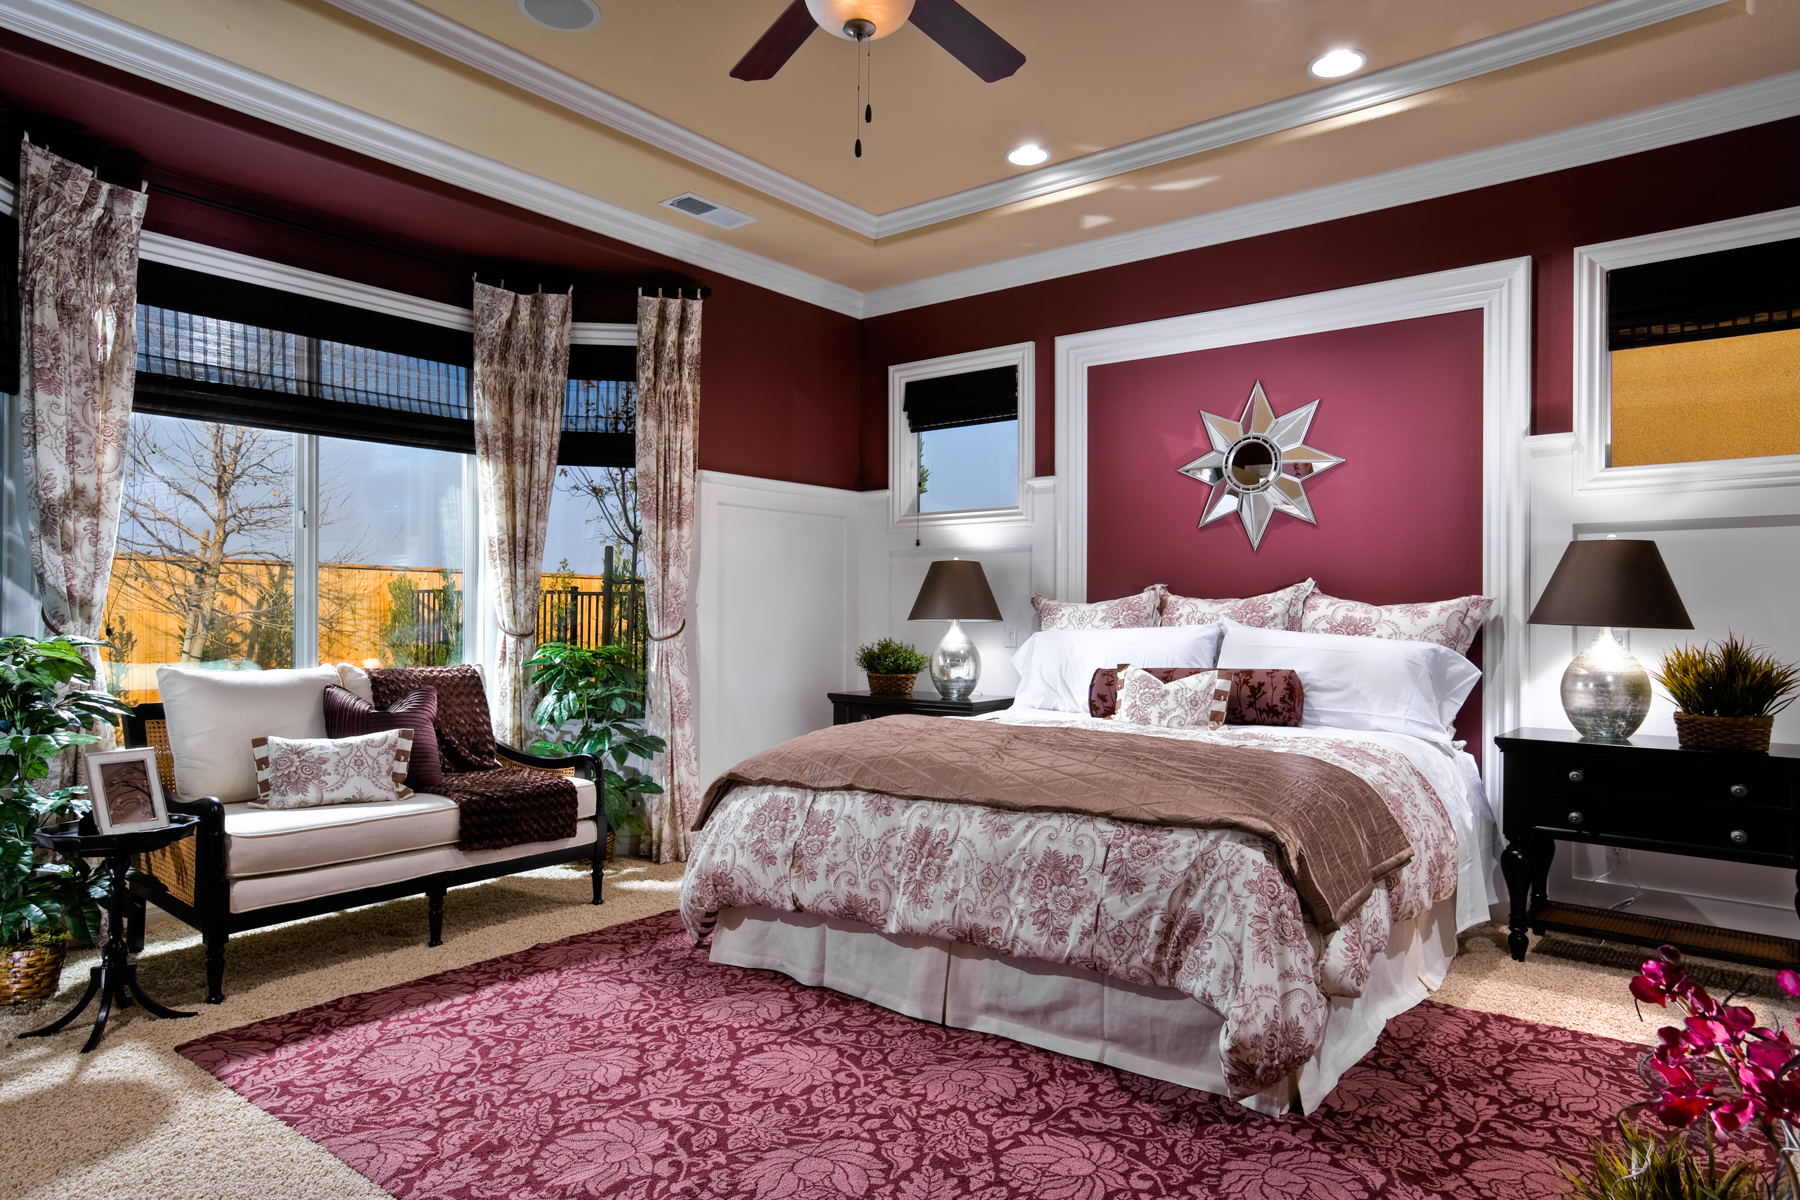 Bedroom Decor Without Headboard 8 creative ways to decorate without a headboard - mccaffrey homes blog